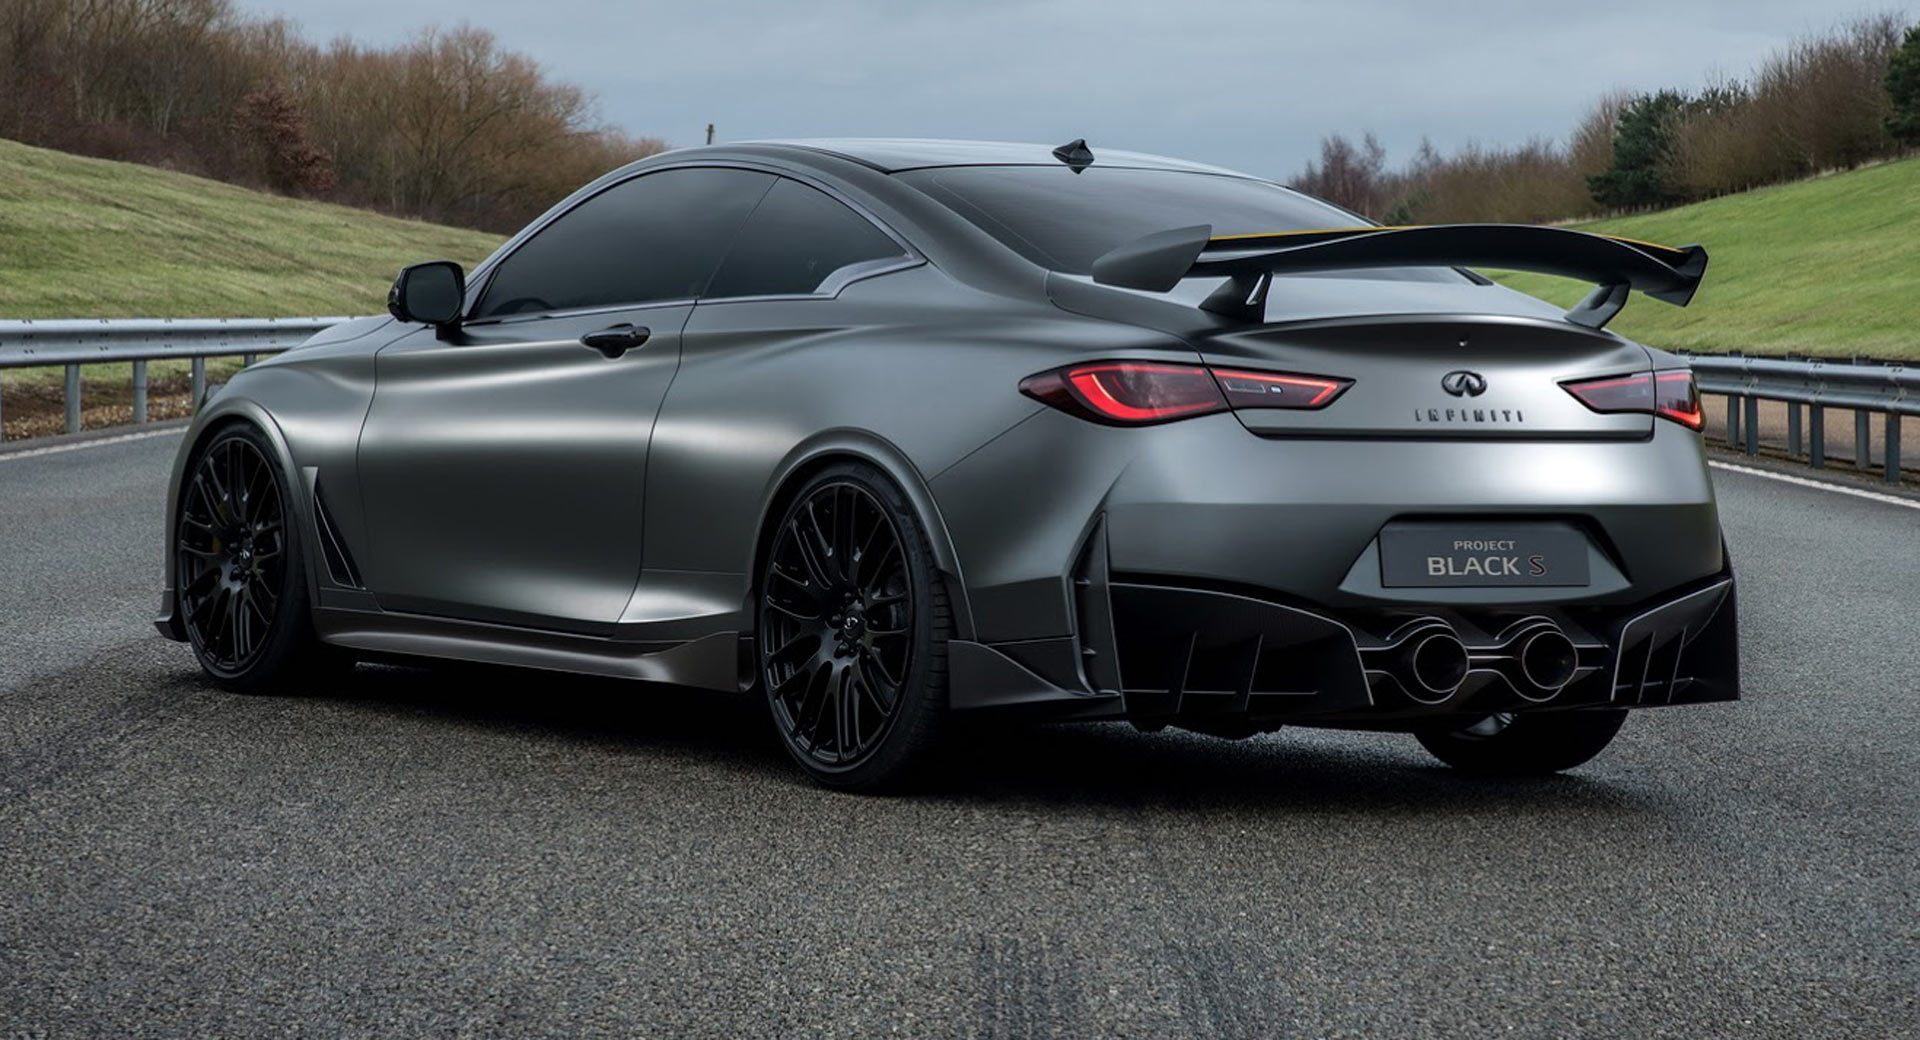 infiniti making progress with q60 project black s hybrid coupe carscoops. Black Bedroom Furniture Sets. Home Design Ideas